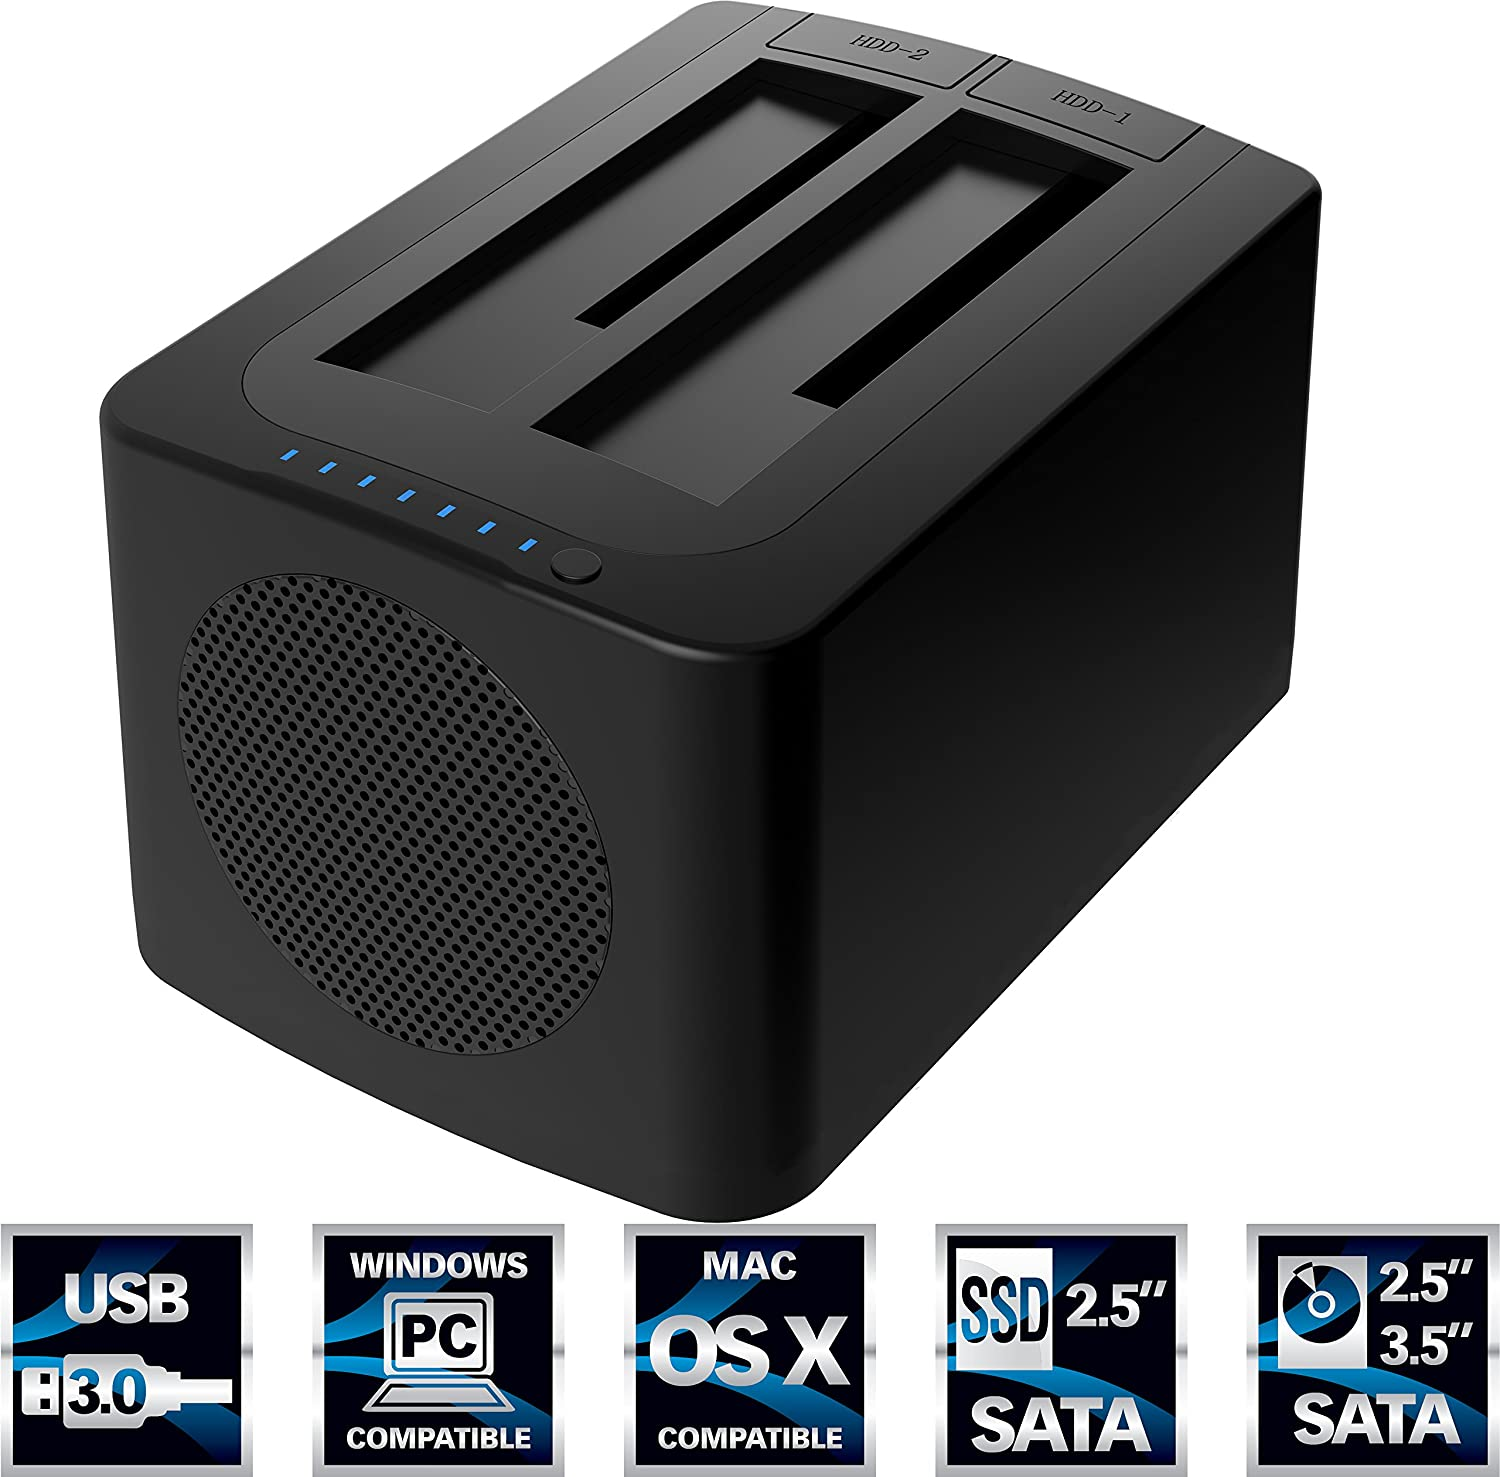 0 External Docking Station Tipos De Cancer Orico 6629us3 C Usb 30 To Sata Dual Bay Hdd Sabrent Hard Drive With Built In